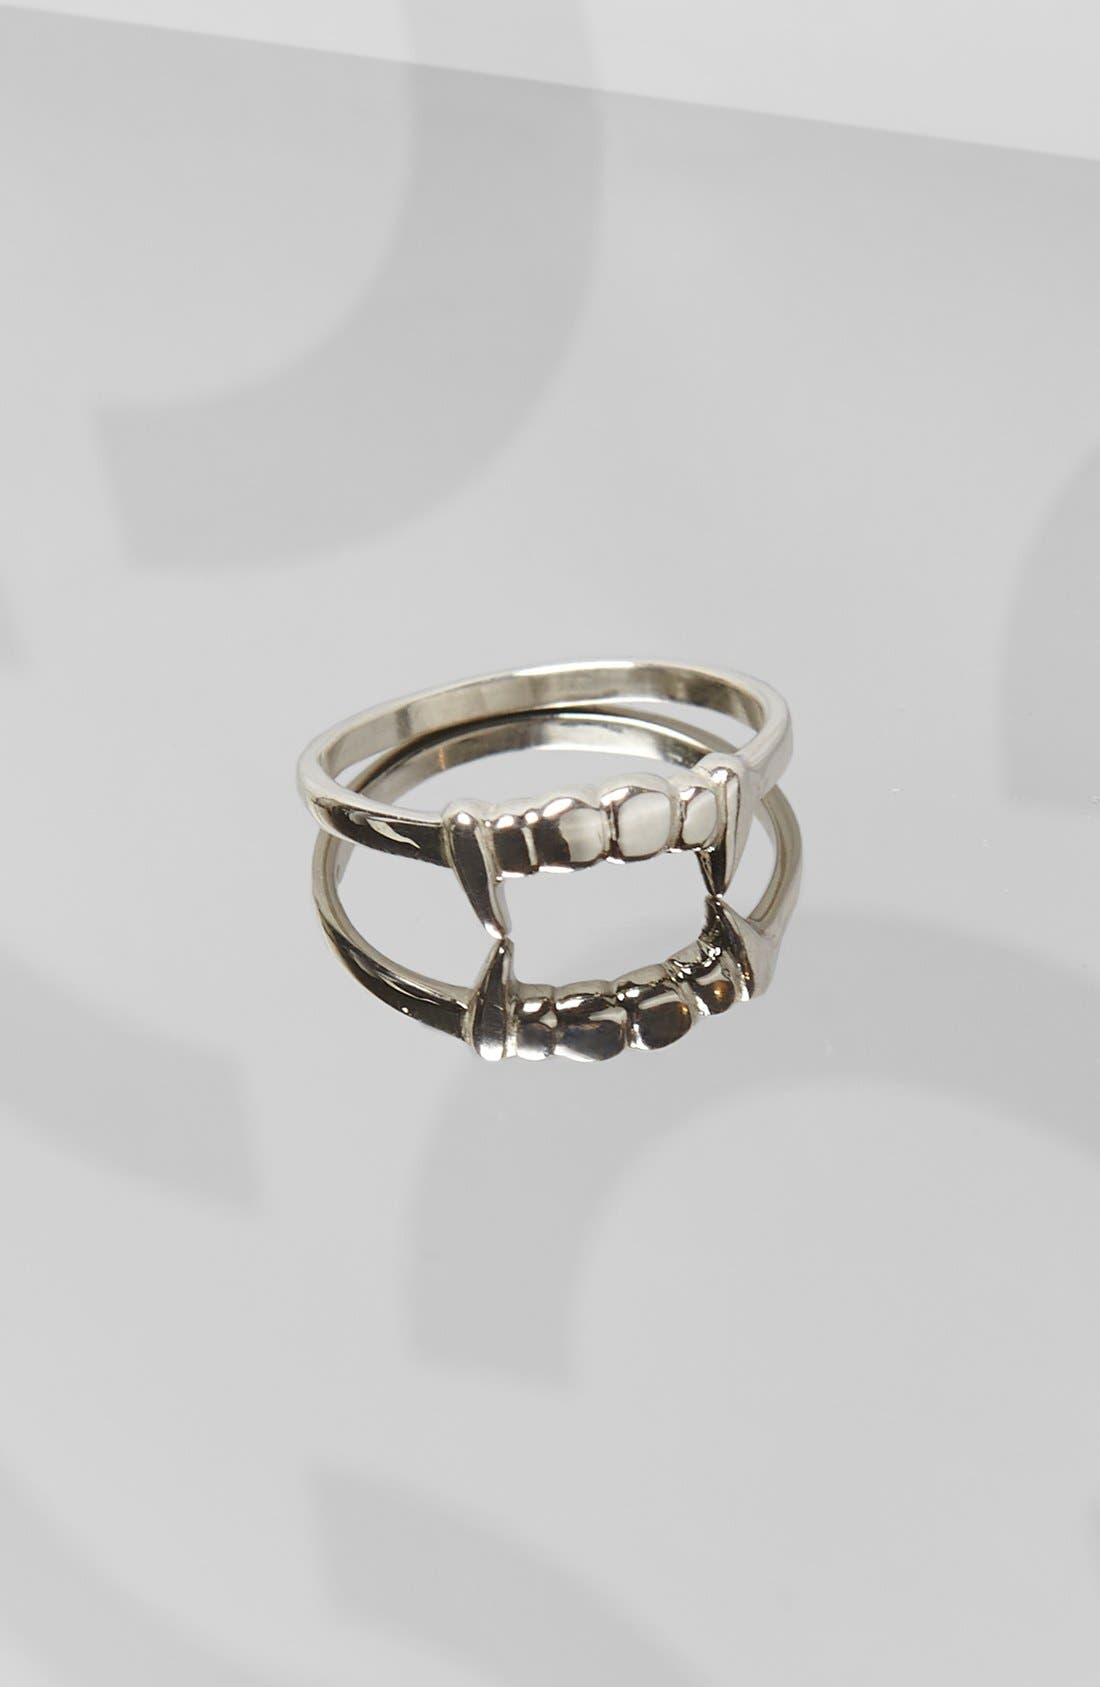 Fang Sterling Silver Stacker Ring,                             Alternate thumbnail 3, color,                             SILVER